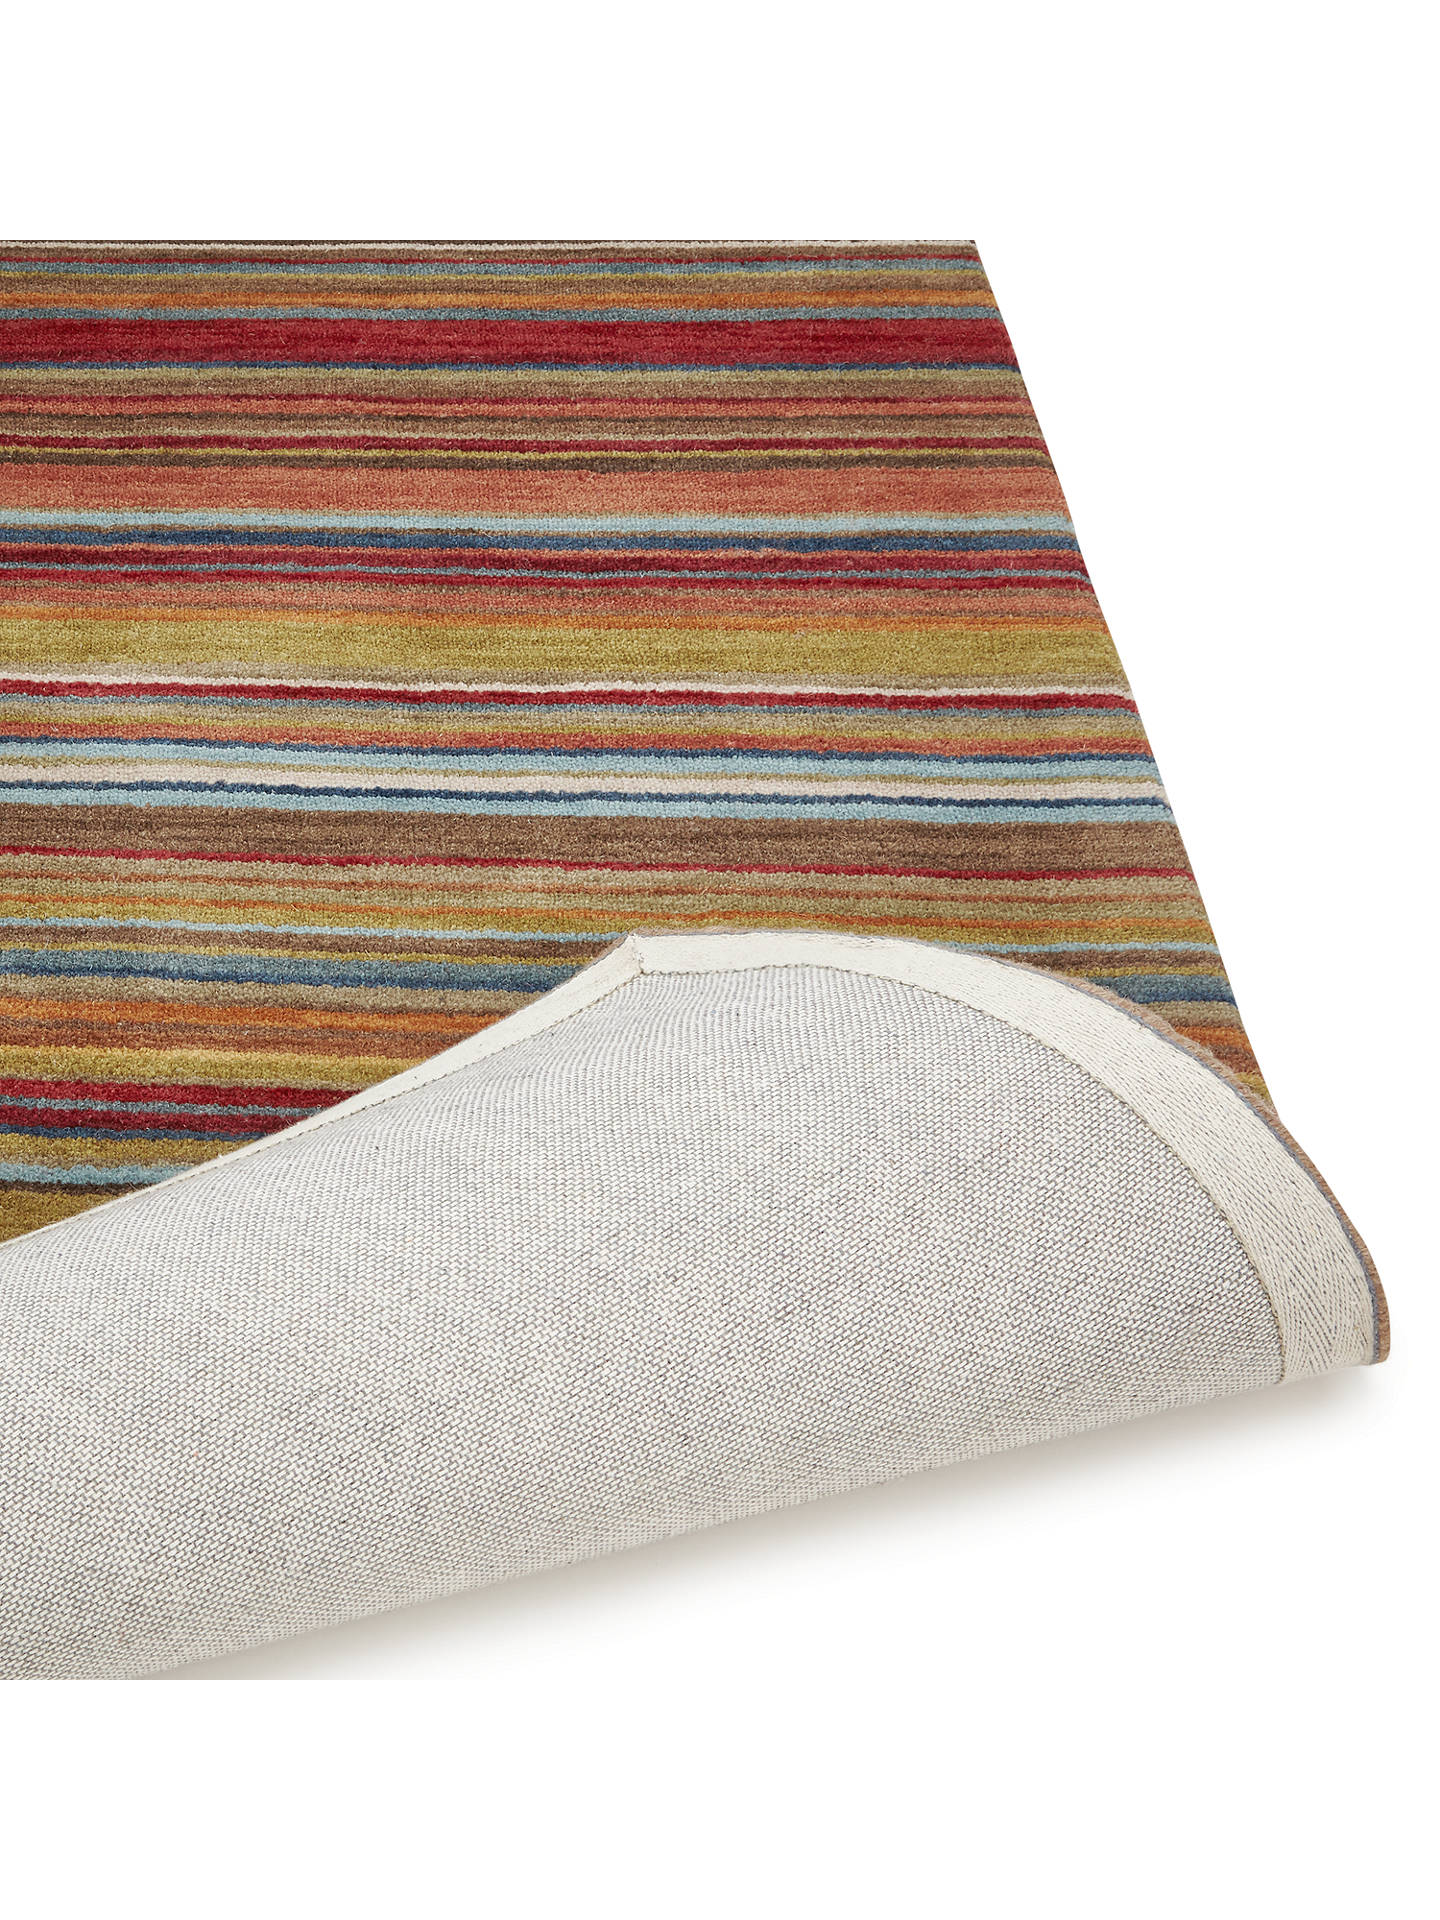 Buy John Lewis & Partners Russet Multistripe Rug, L120 x W60cm Online at johnlewis.com